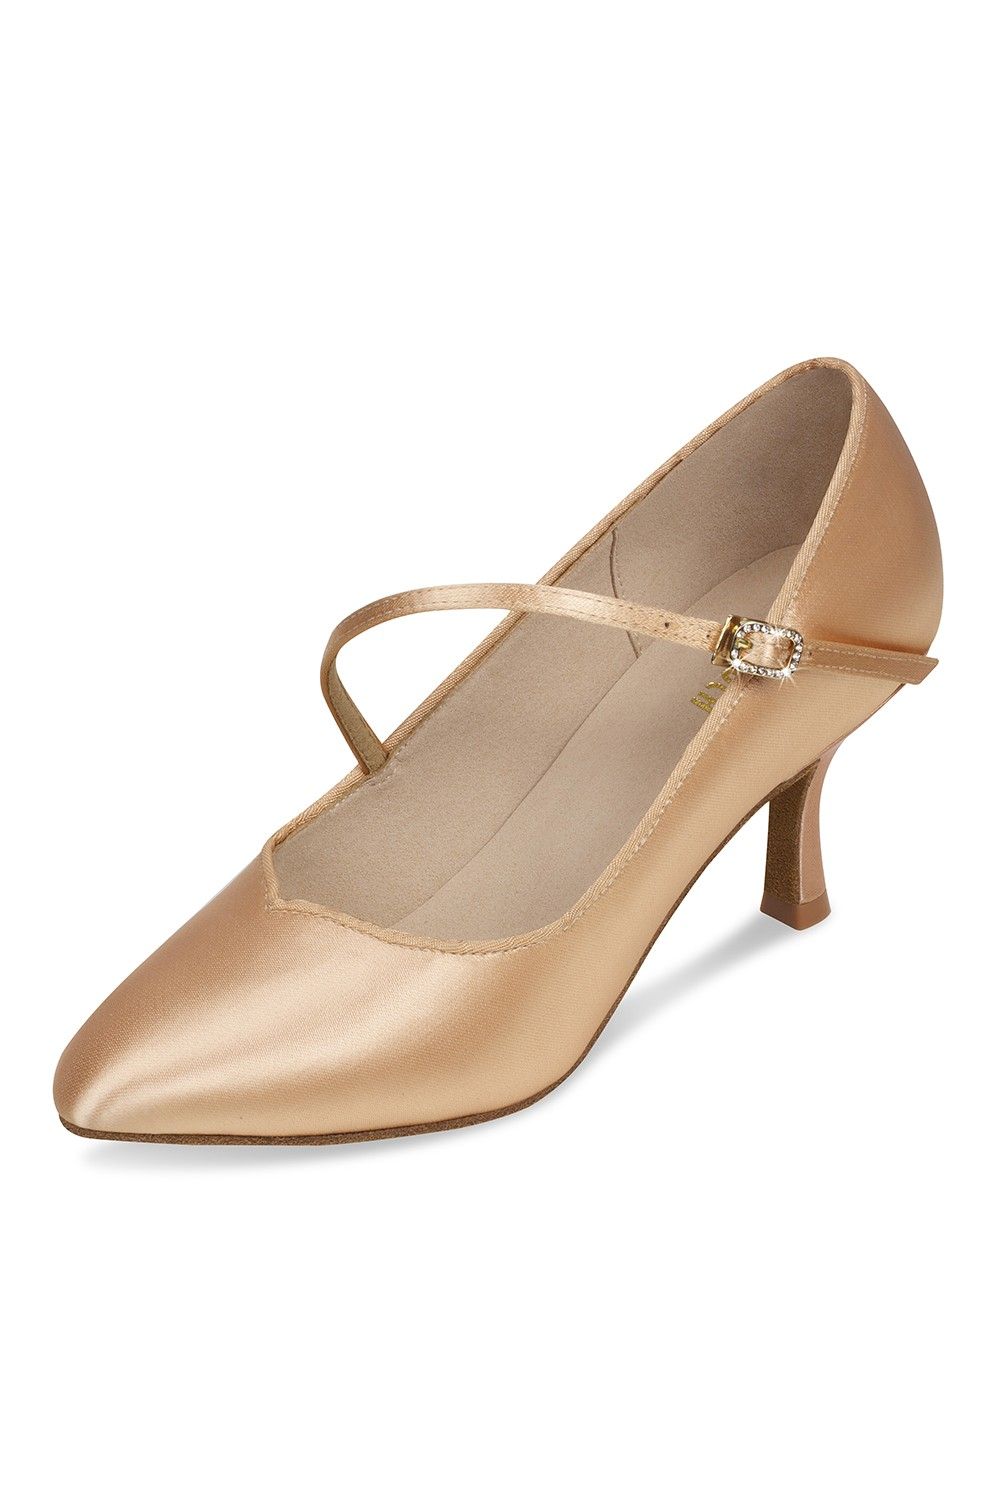 Monica Women's Ballroom & Latin Shoes